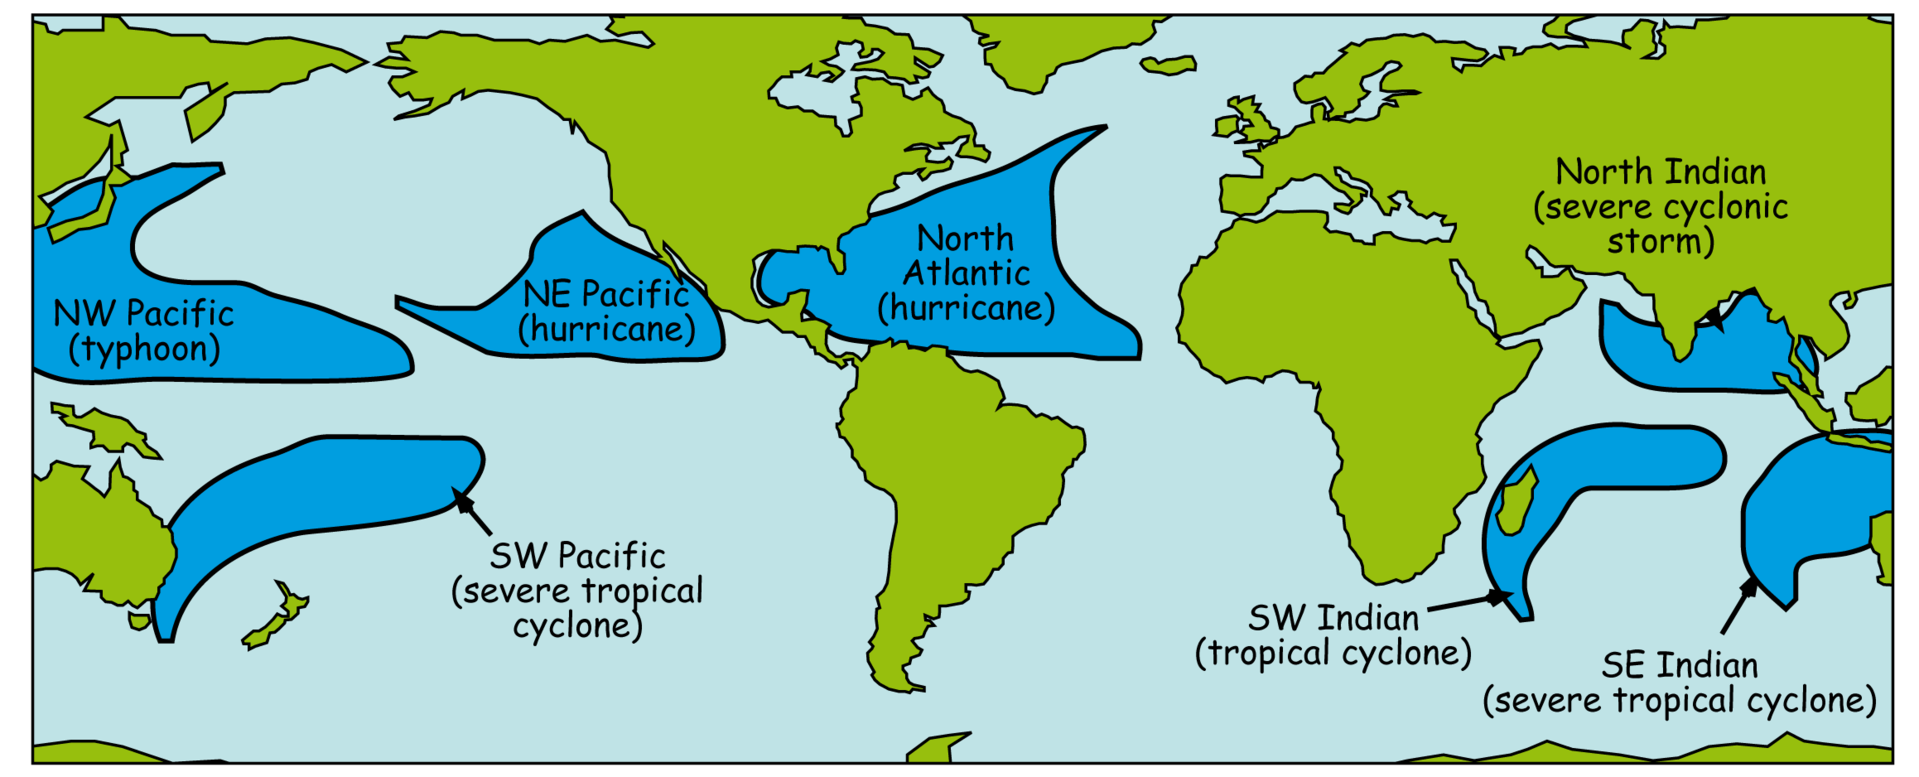 Different regions of the world refer to hurricanes in different ways. They're the same, whether a typhoon or cyclone.